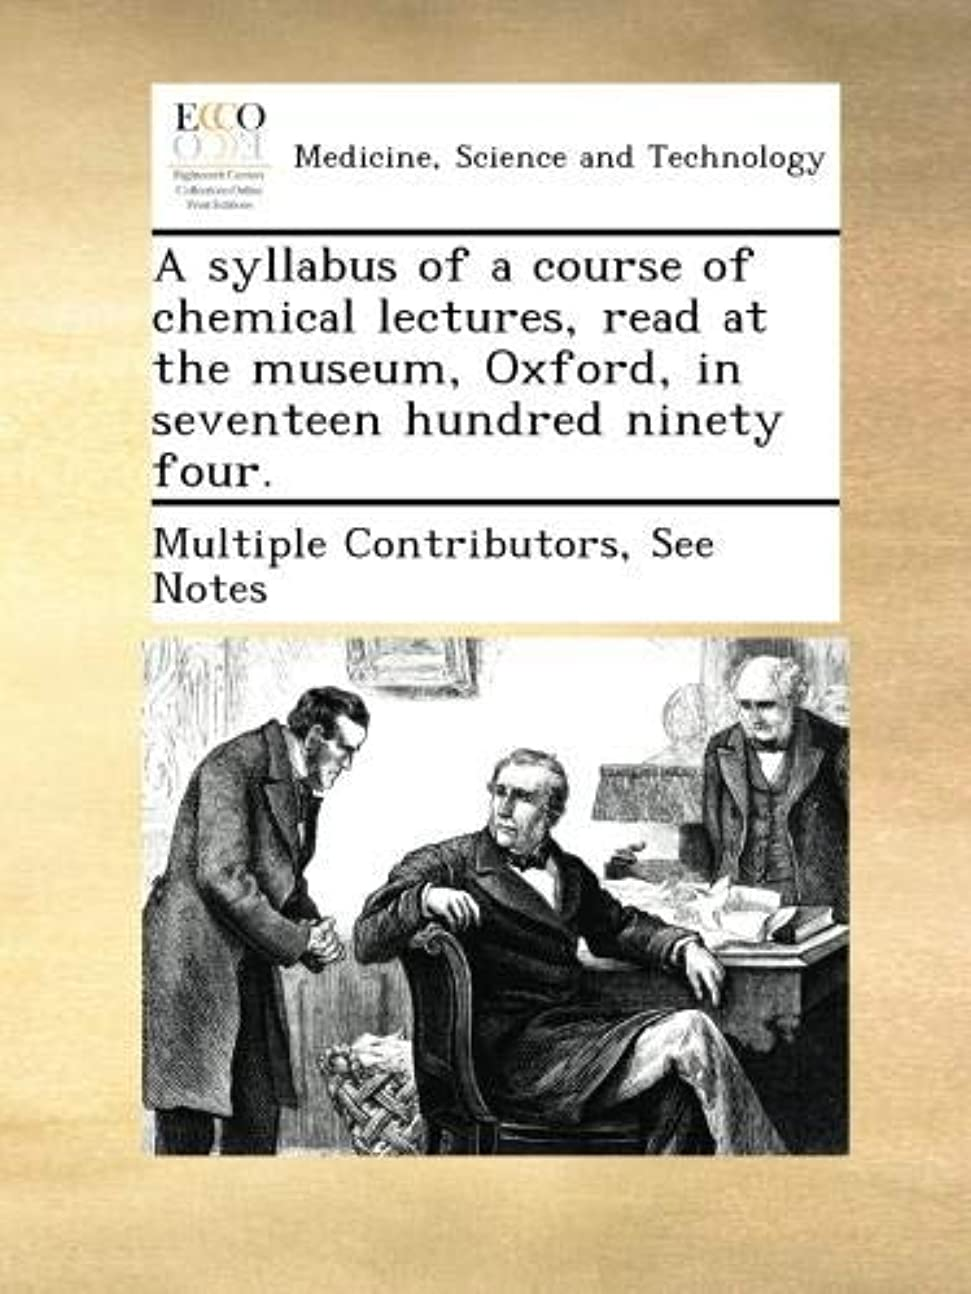 廃止限界偶然のA syllabus of a course of chemical lectures, read at the museum, Oxford, in seventeen hundred ninety four.